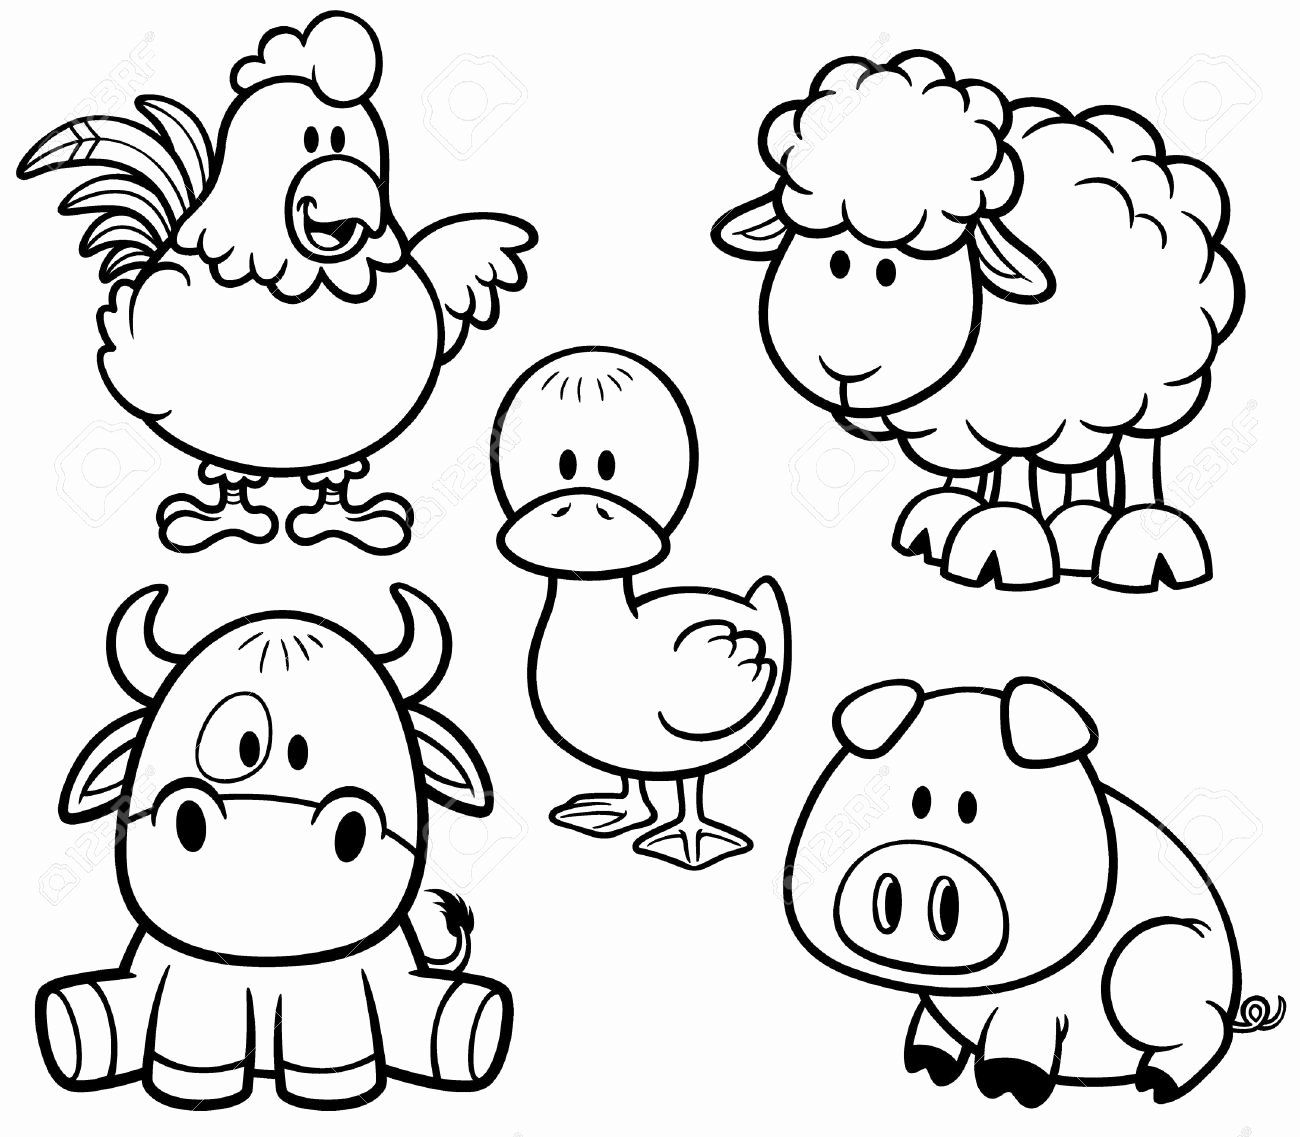 Free Farm Animals Coloring Pages New Easy Farm Animal Dot To Printable Sketch Coloring P In 2020 Farm Animal Coloring Pages Animal Coloring Pages Animal Coloring Books